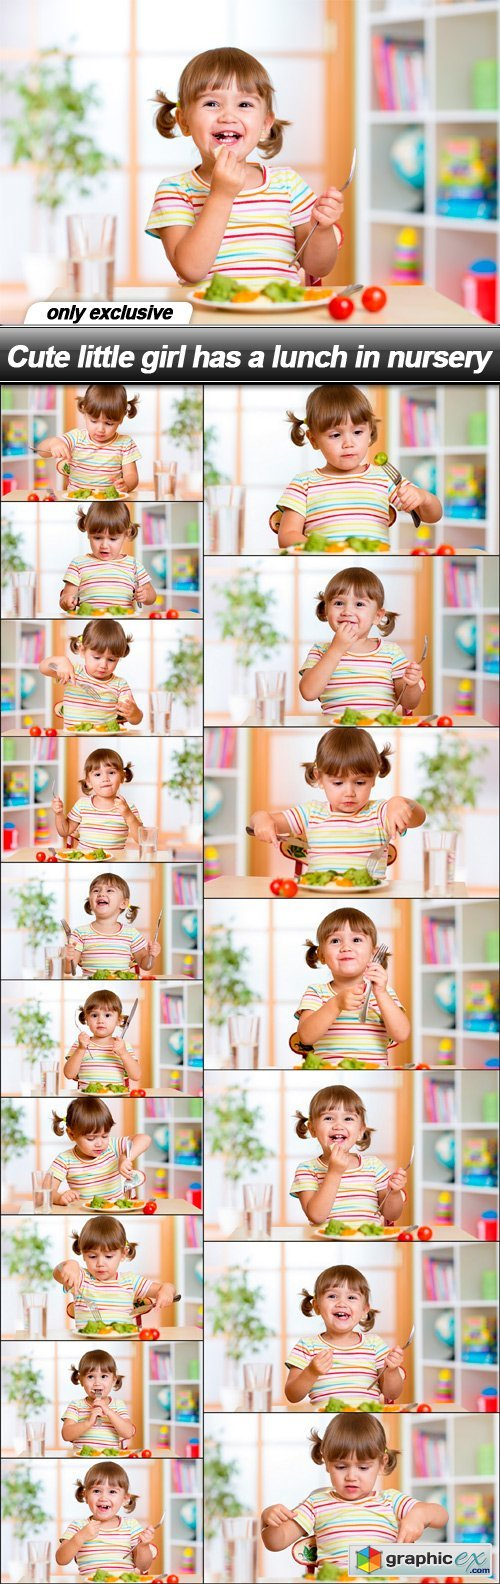 Cute little girl has a lunch in nursery - 17 UHQ JPEG